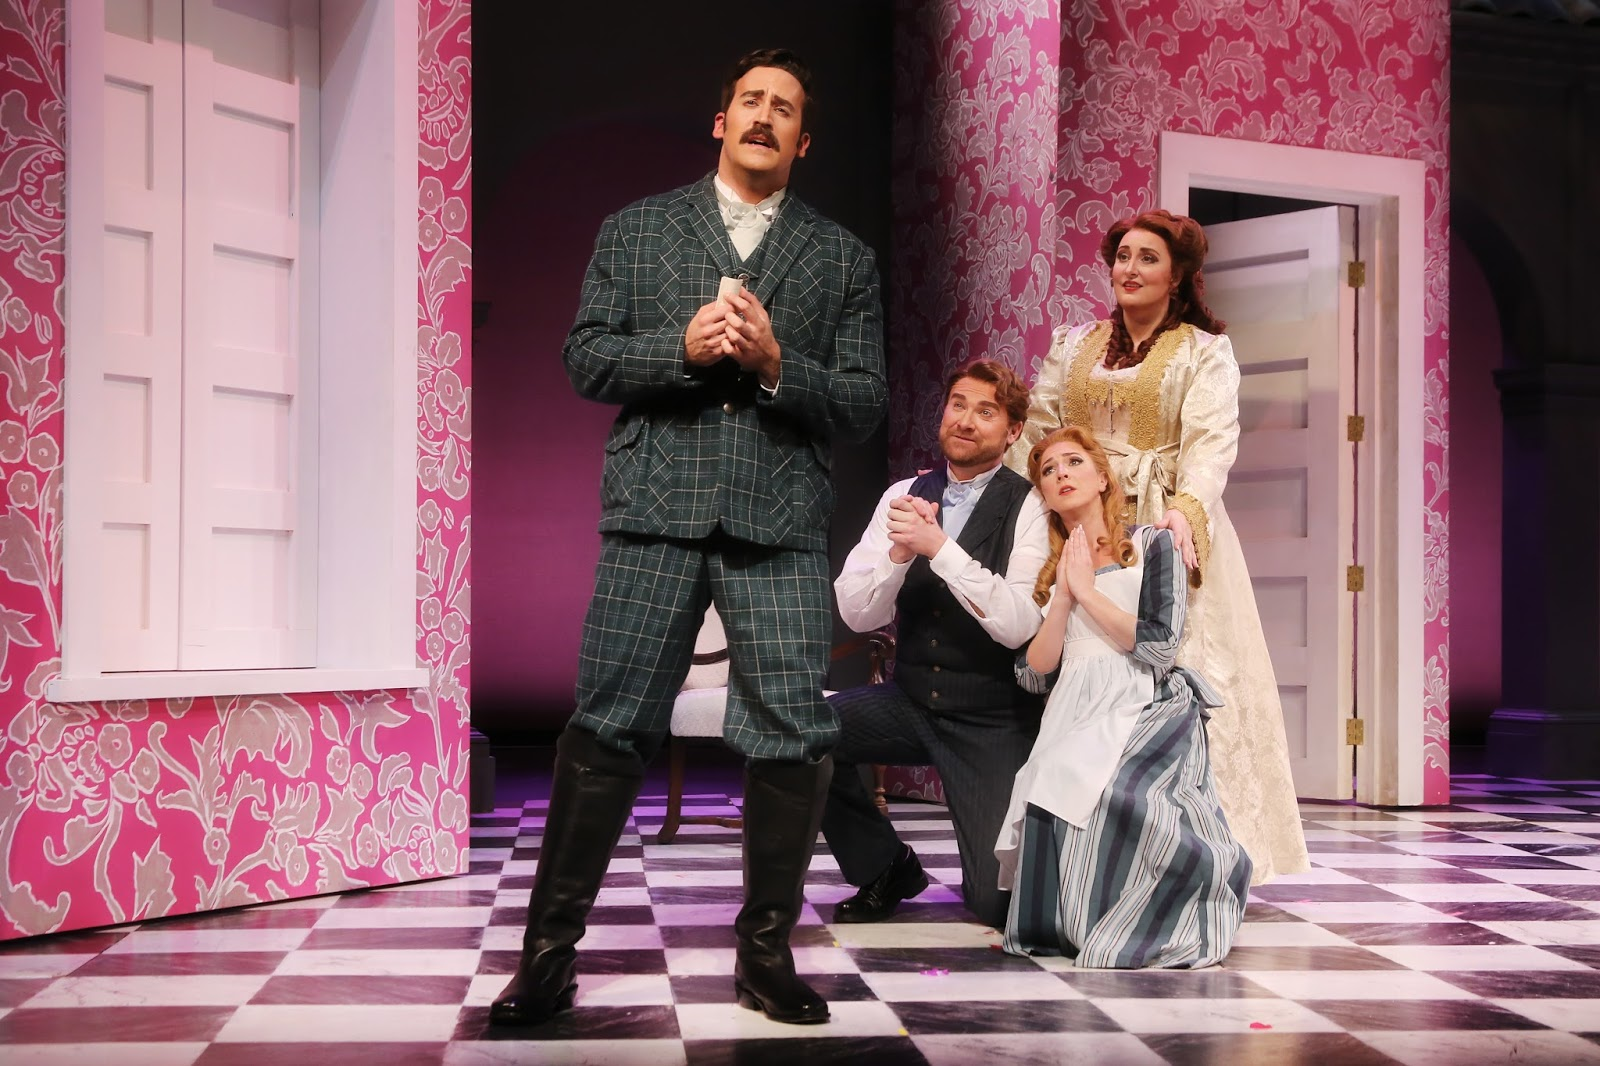 IN PERFORMANCE: (from left to right) Baritone STEVEN LaBRIE as Conte Almaviva, bass-baritone TYLER SIMPSON as Figaro, and sopranos JENNIFER CHEREST and D'ANA LOMBARD as Susanna and Contessa Almaviva in North Carolina Opera's production of Wolfgang Amadeus Mozart's LE NOZZE DI FIGARO, February 2017 [Photo by Curtis Brown Photography, © by North Carolina Opera]